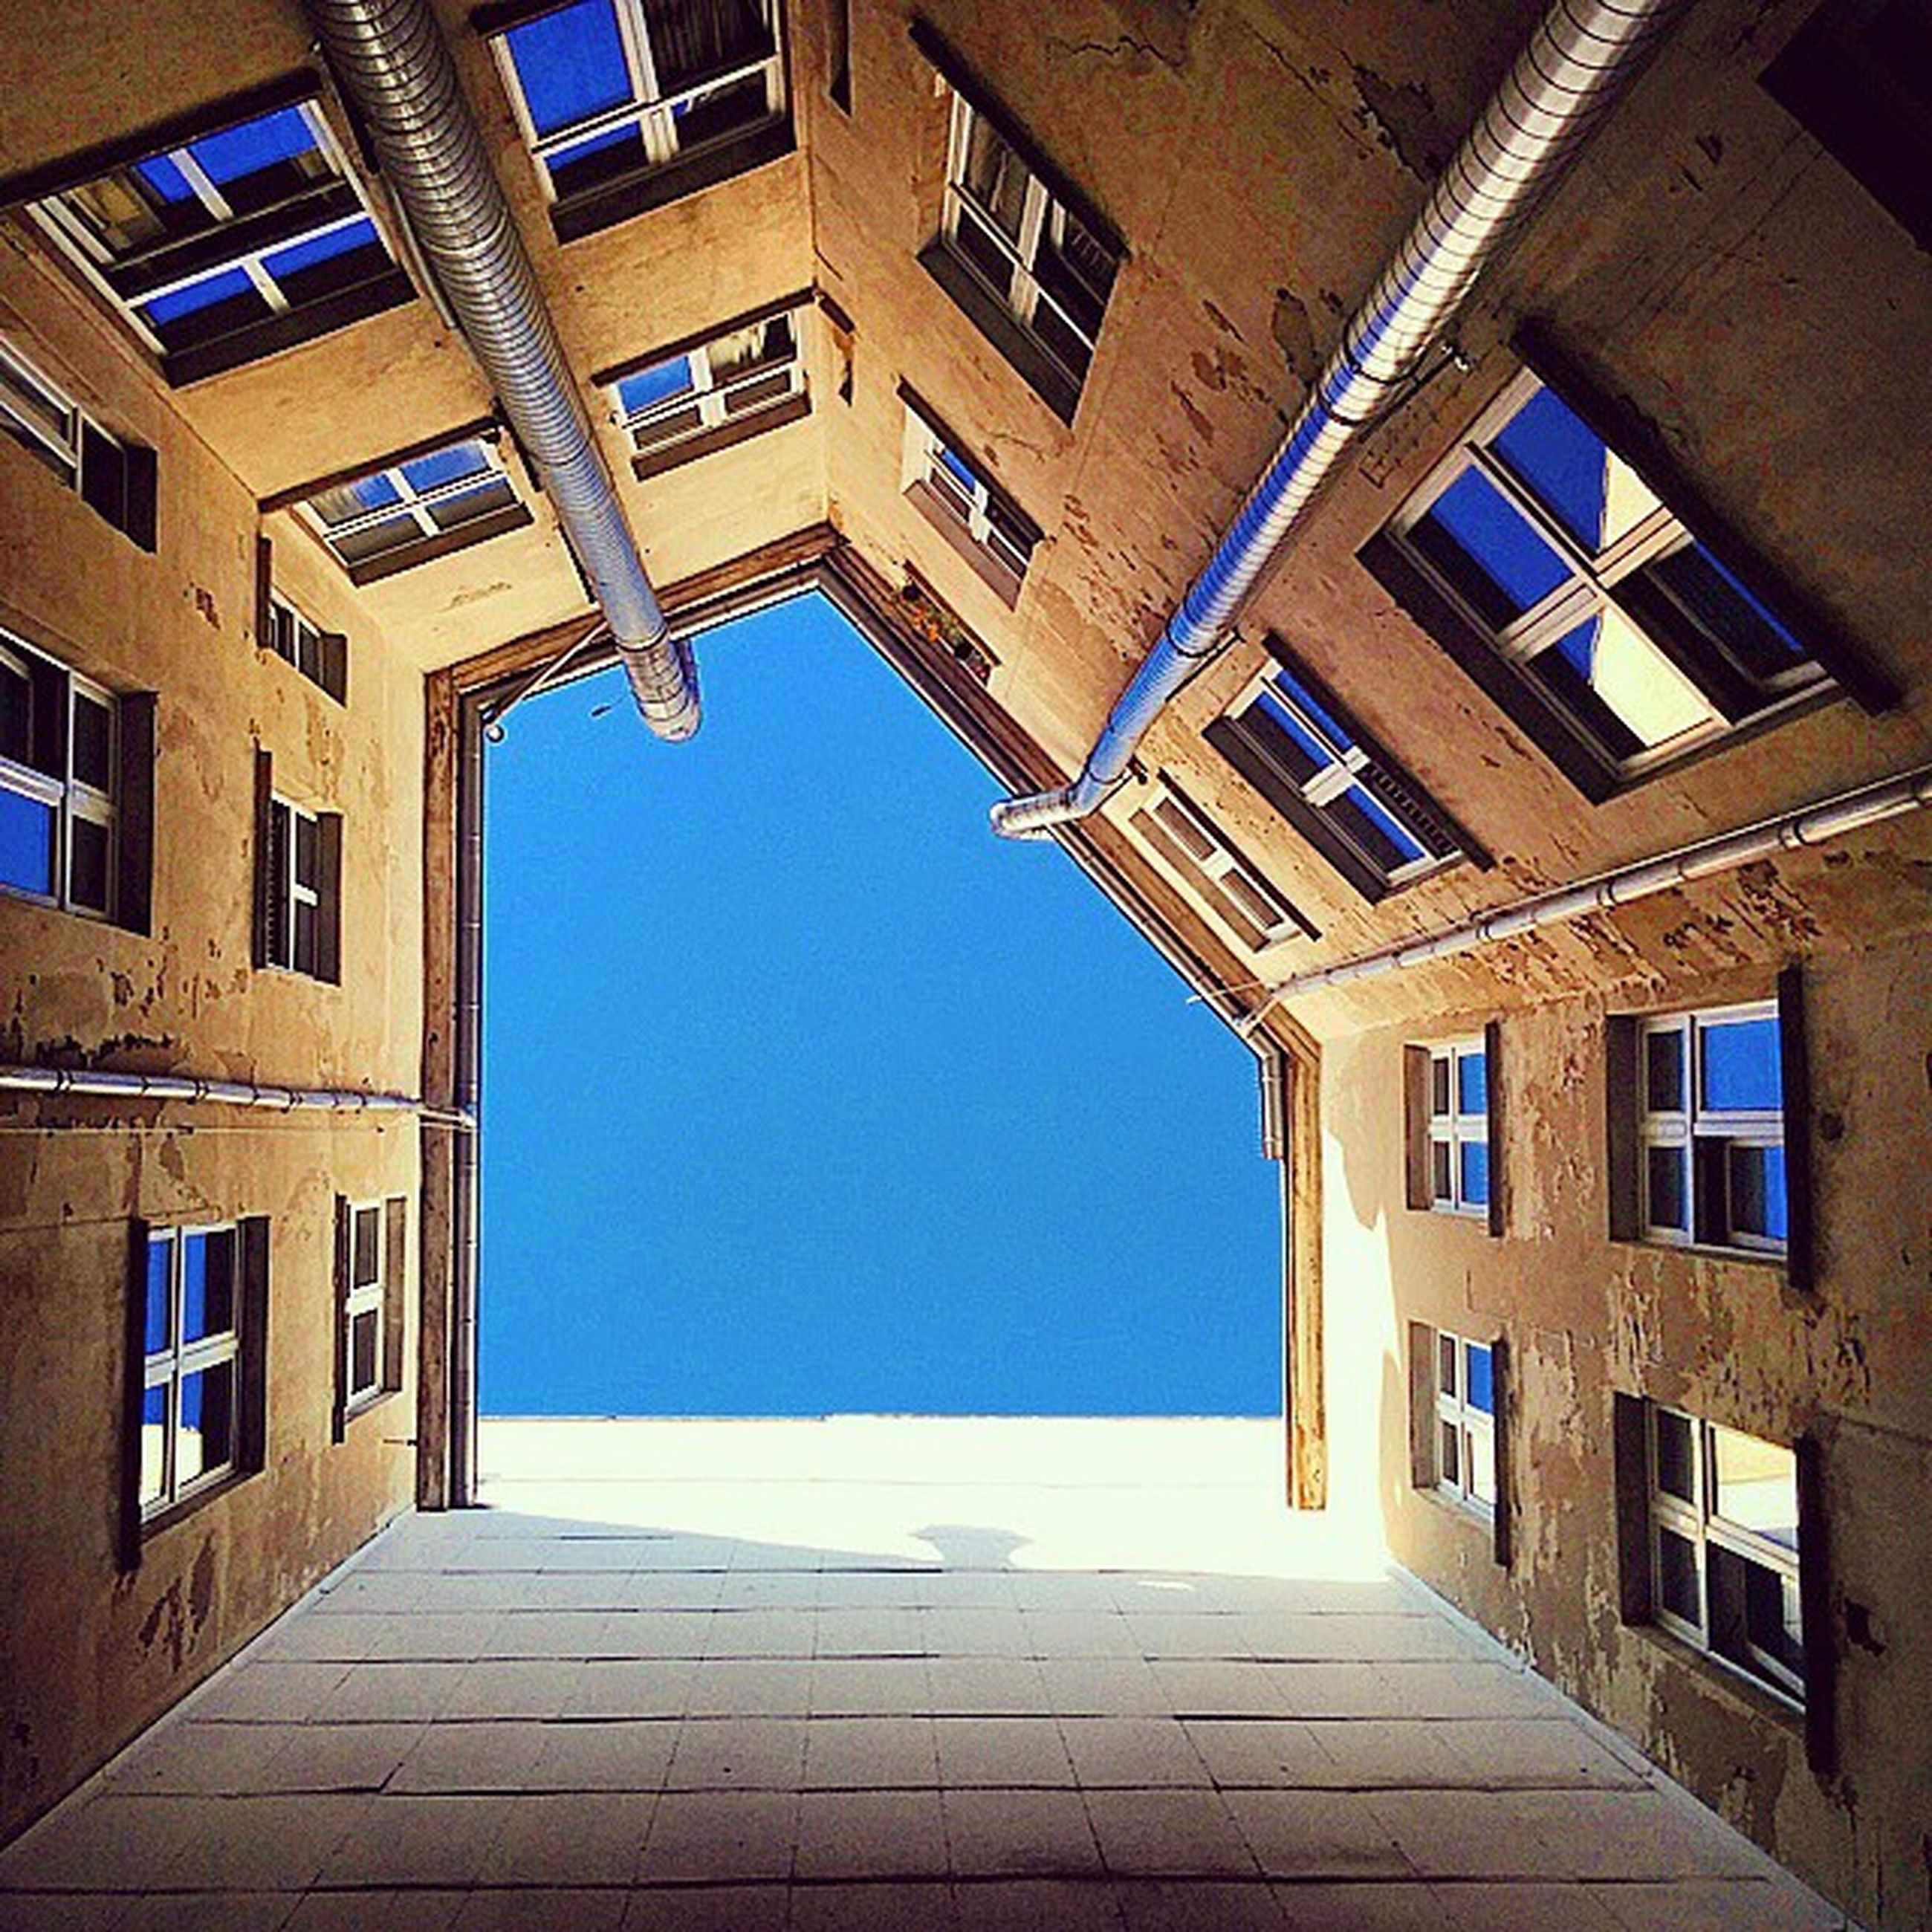 architecture, built structure, building exterior, window, blue, building, clear sky, residential structure, residential building, sunlight, house, day, city, no people, shadow, outdoors, low angle view, wall, door, facade